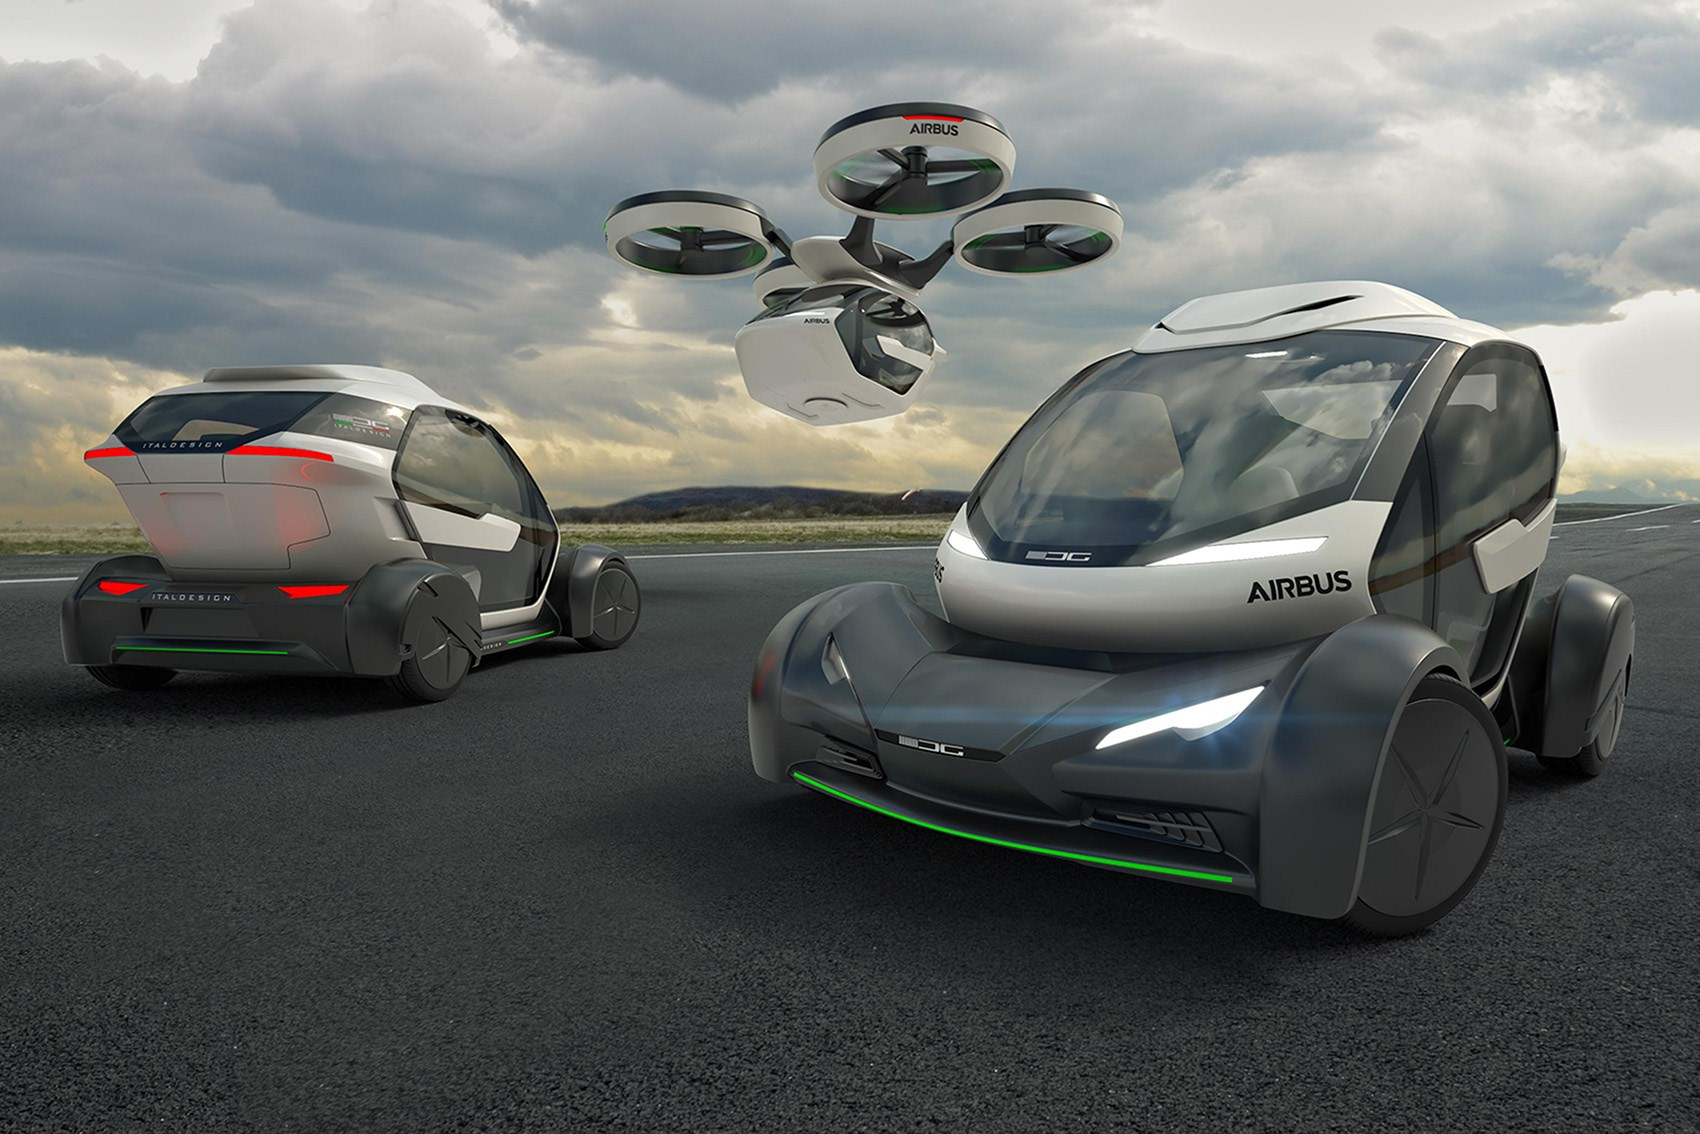 Pop.Up by Airbus and Italdesign driverless car